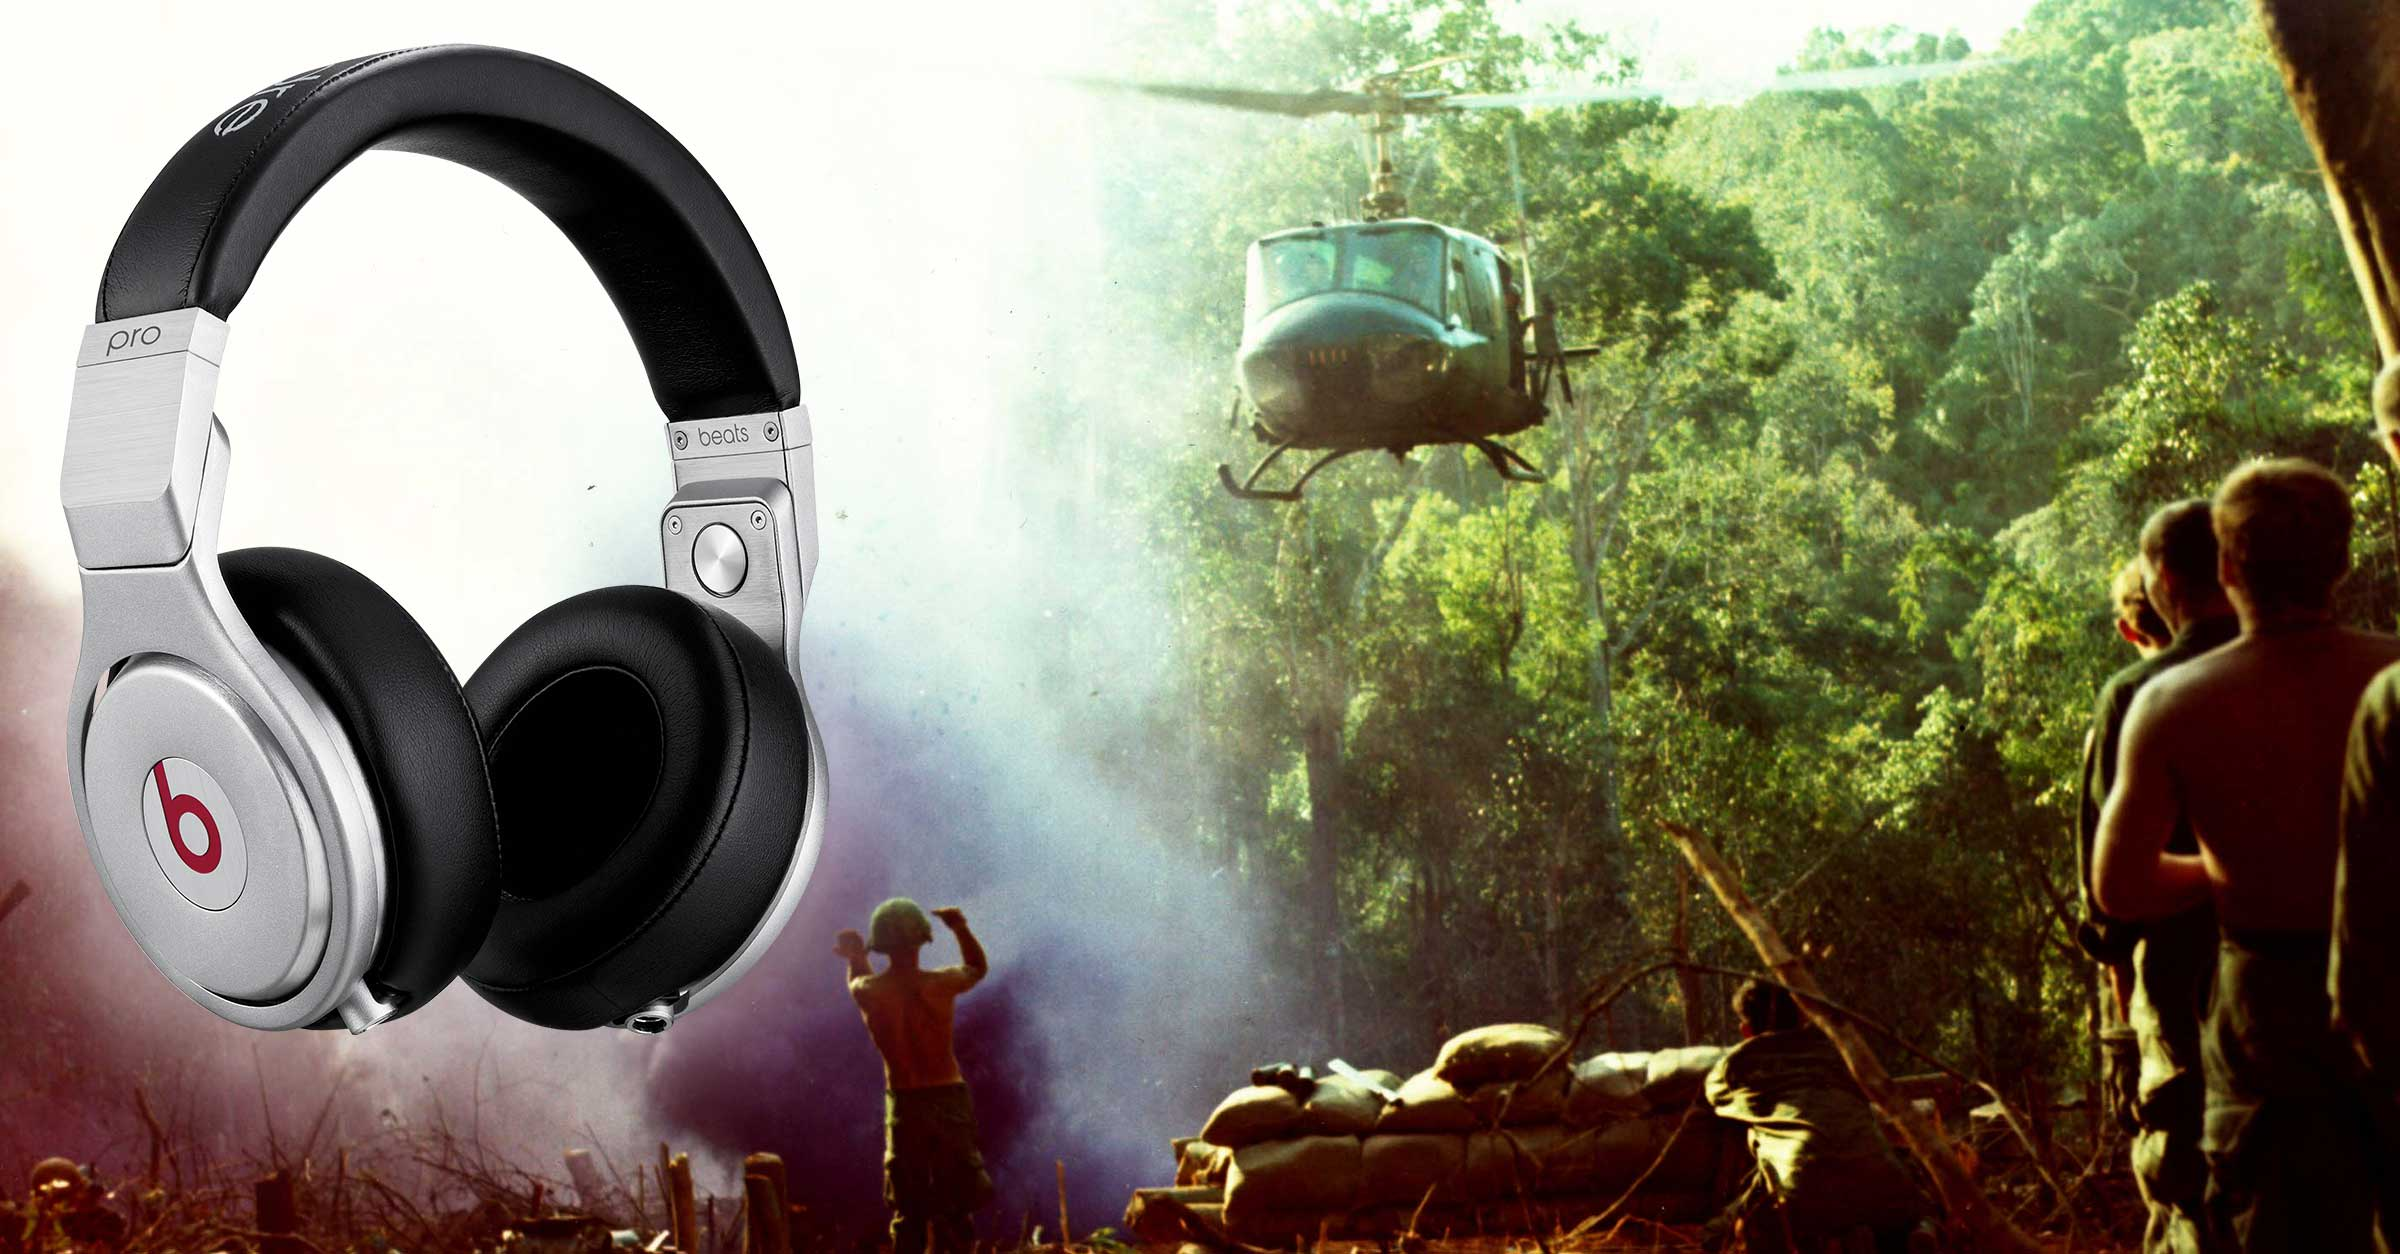 Beats by Dre Uses Vietnam War Footage in Background of Headphones TV Ad Spot